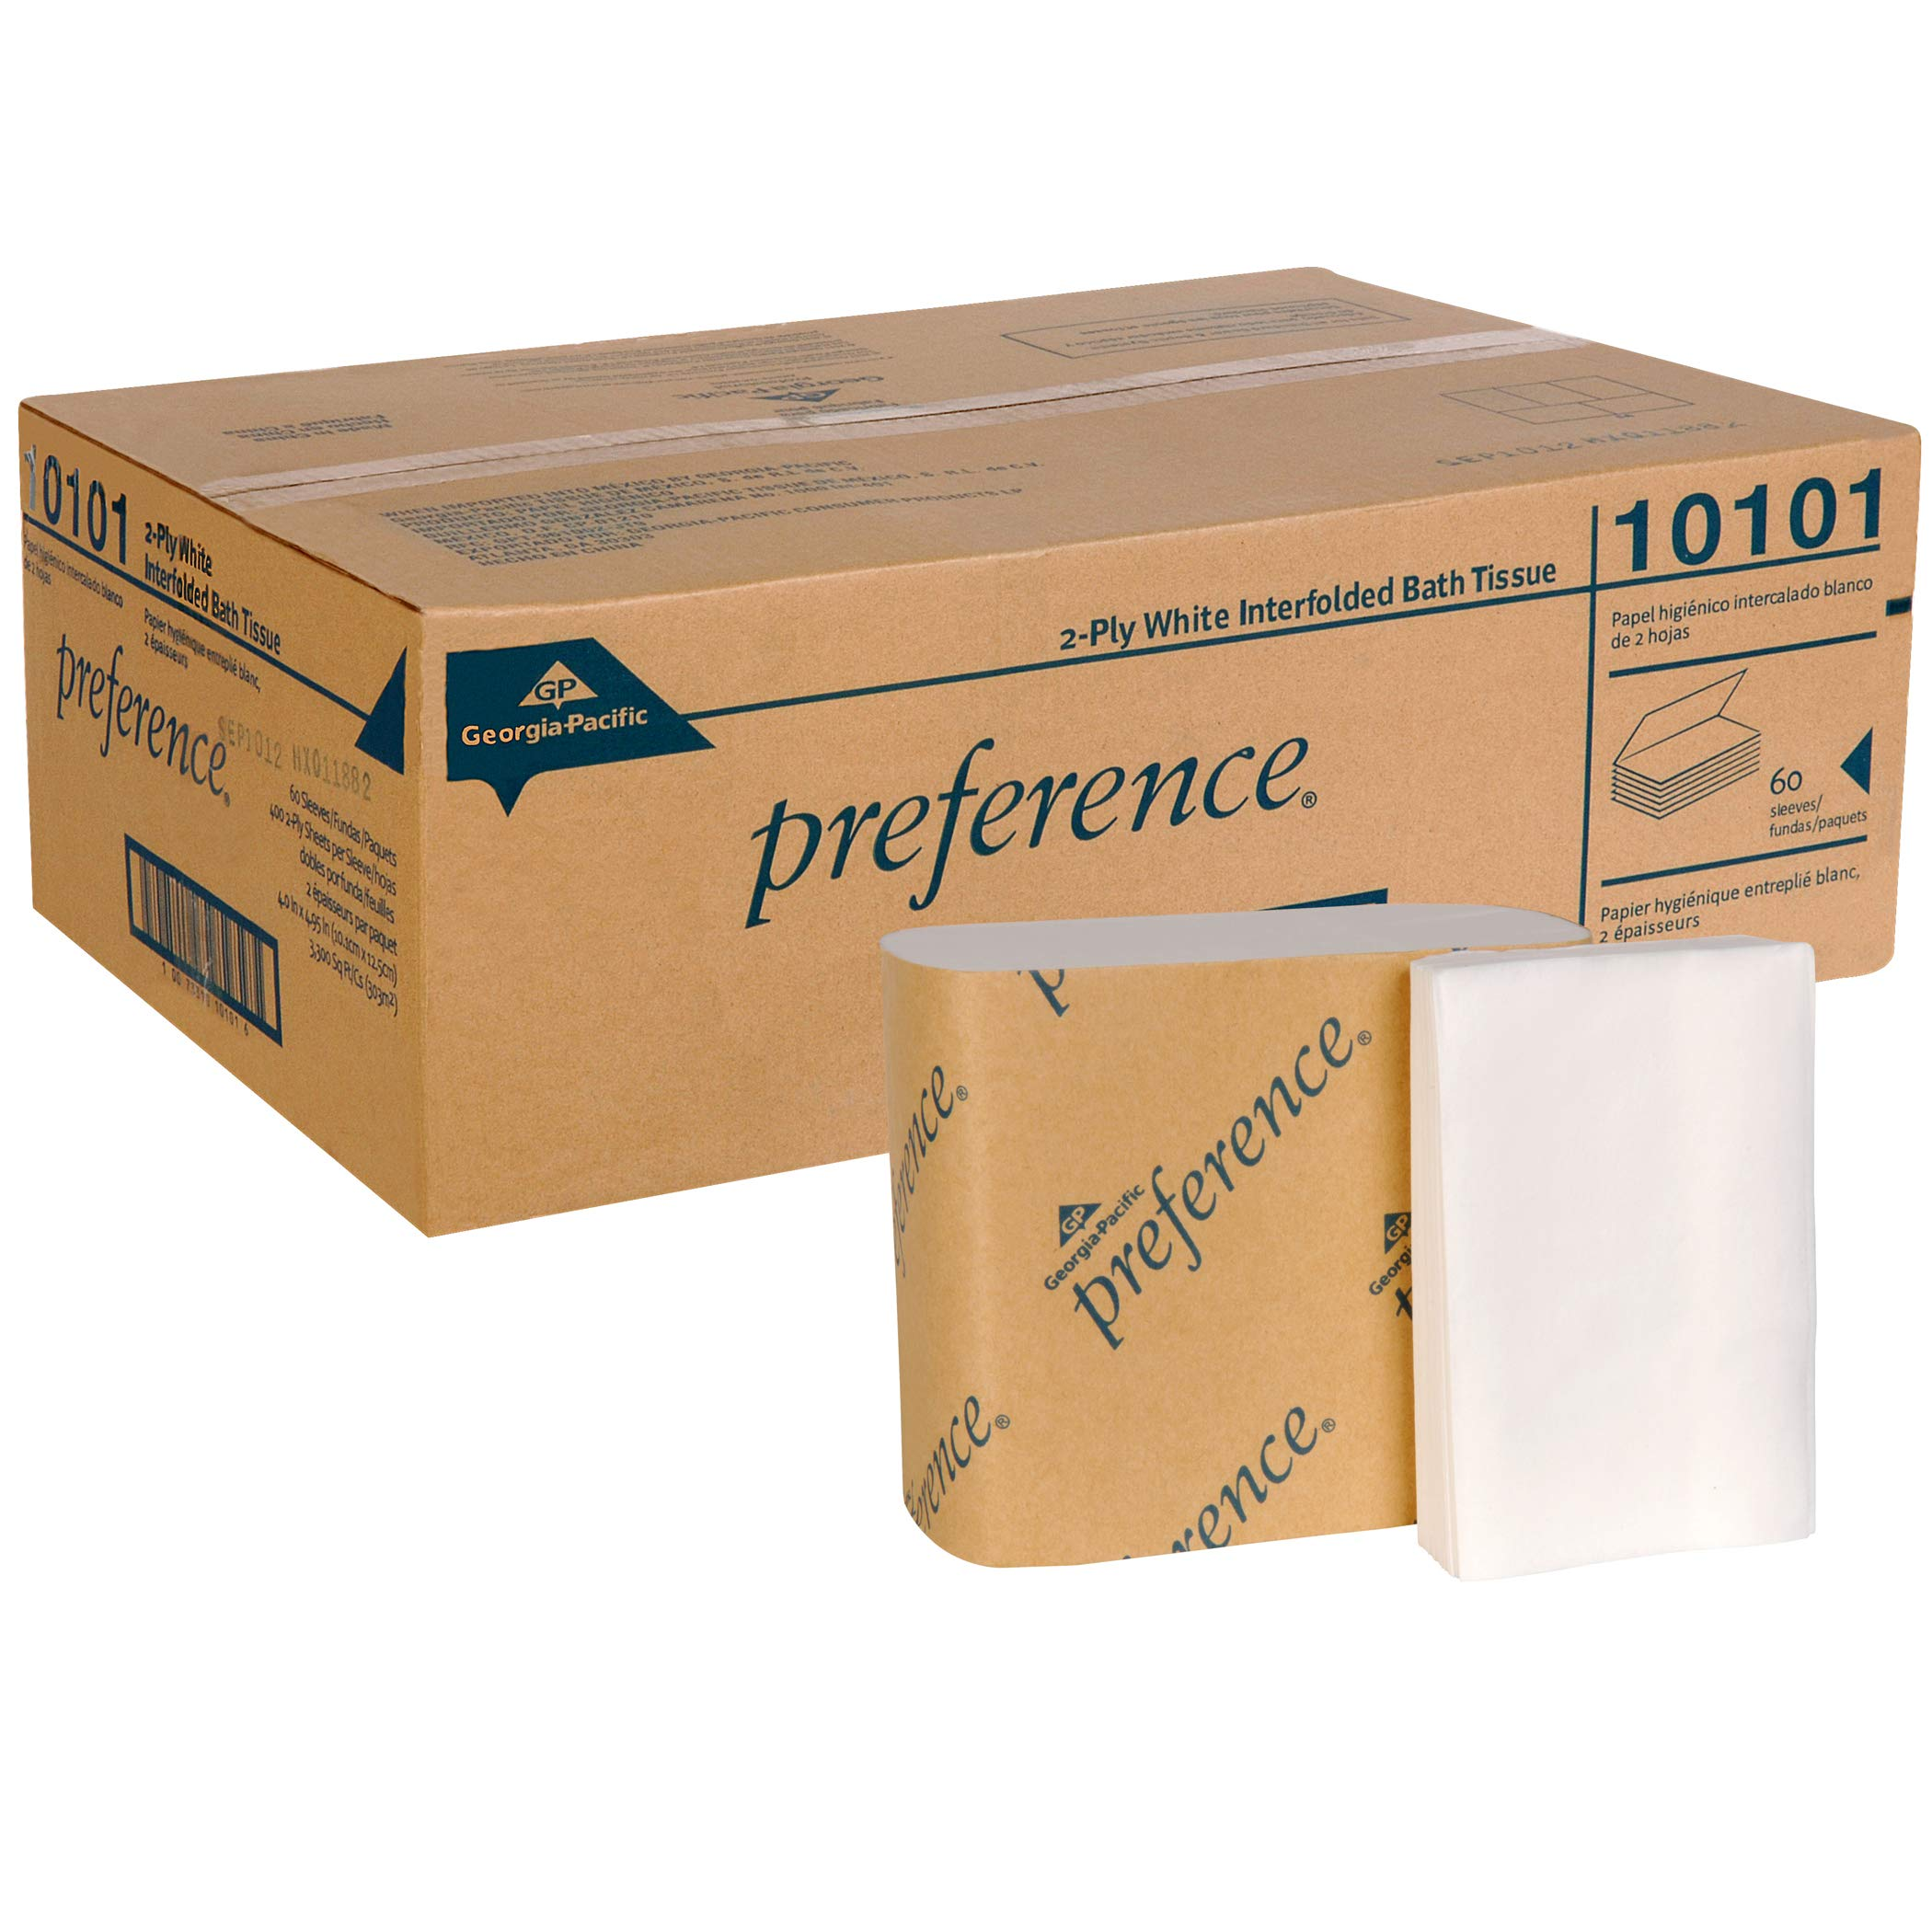 Preference 2-Ply Interfolded Toilet Paper by GP PRO (Georgia-Pacific), 10101, 400 Sheets Per Pack, 60 Packs Per Case